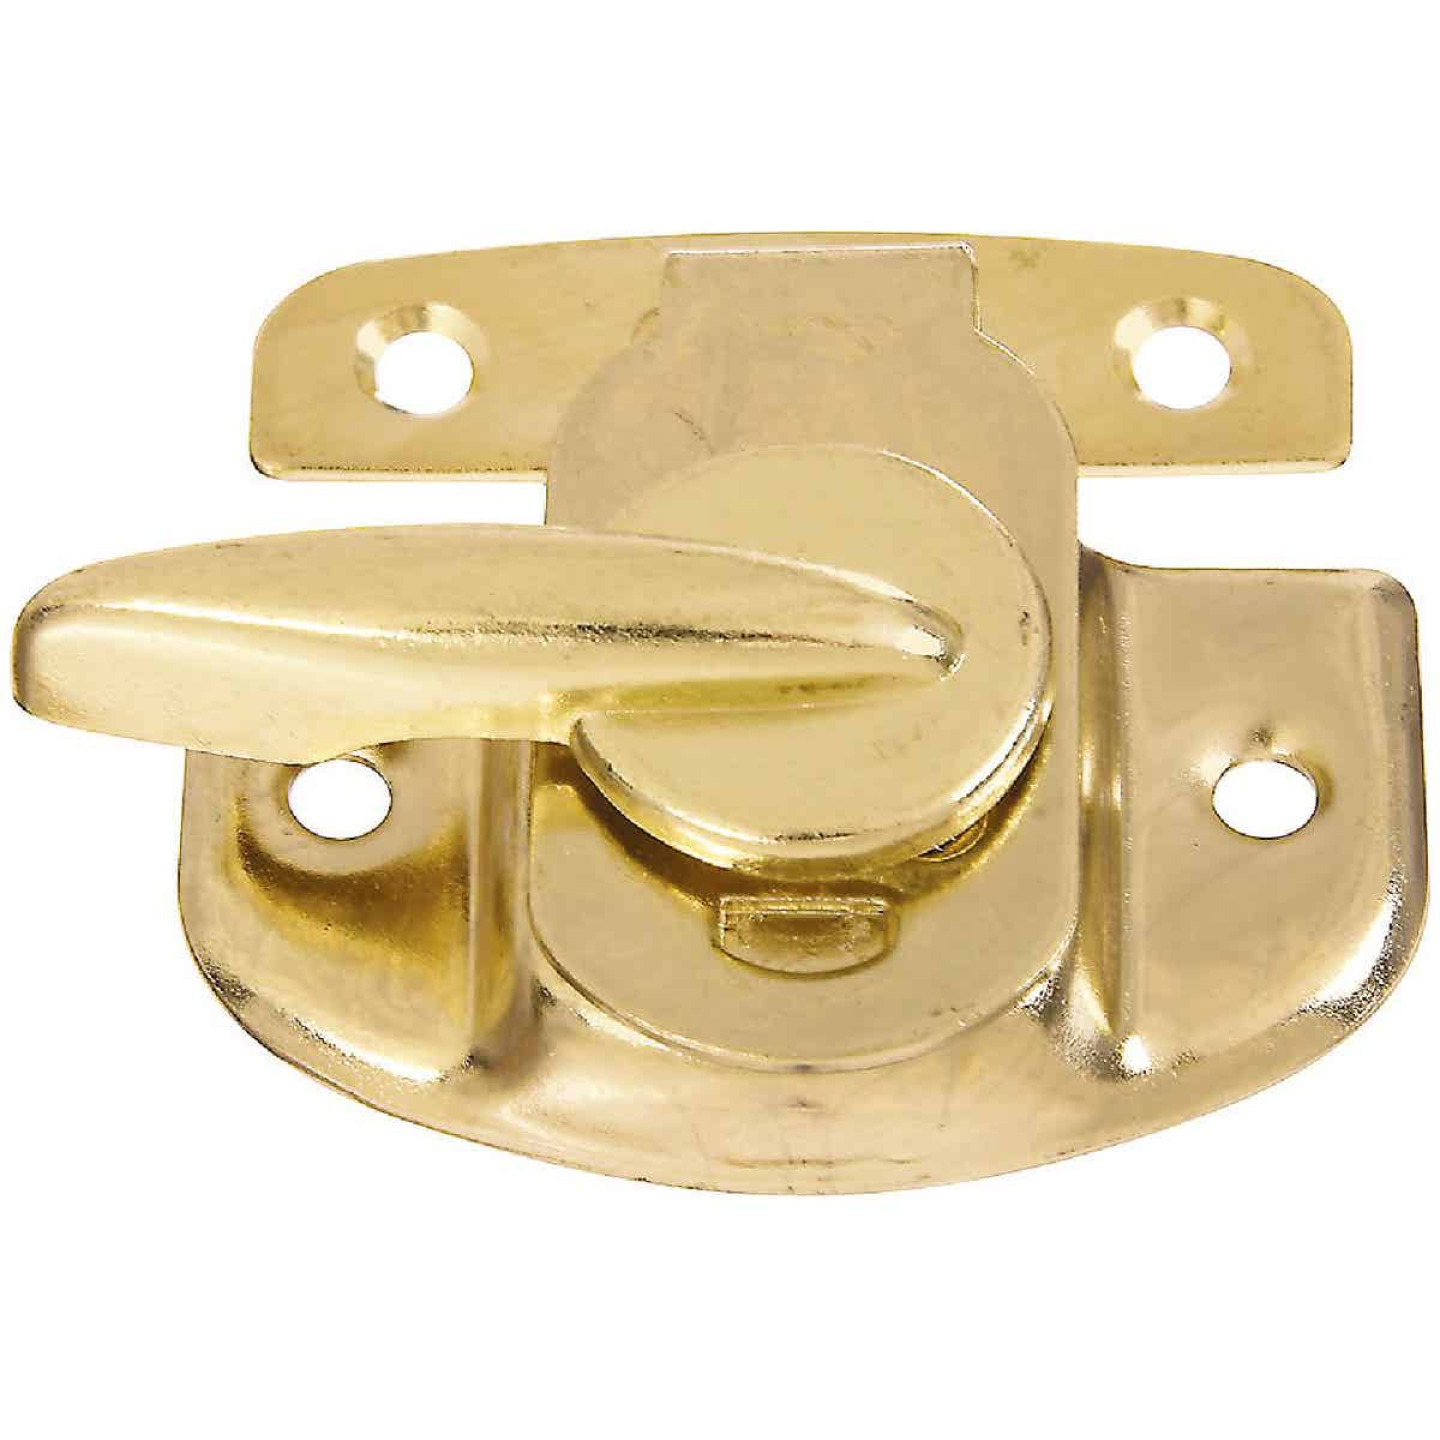 National Double Hung & Sliding Window Brass Cam Sash Lock Image 1